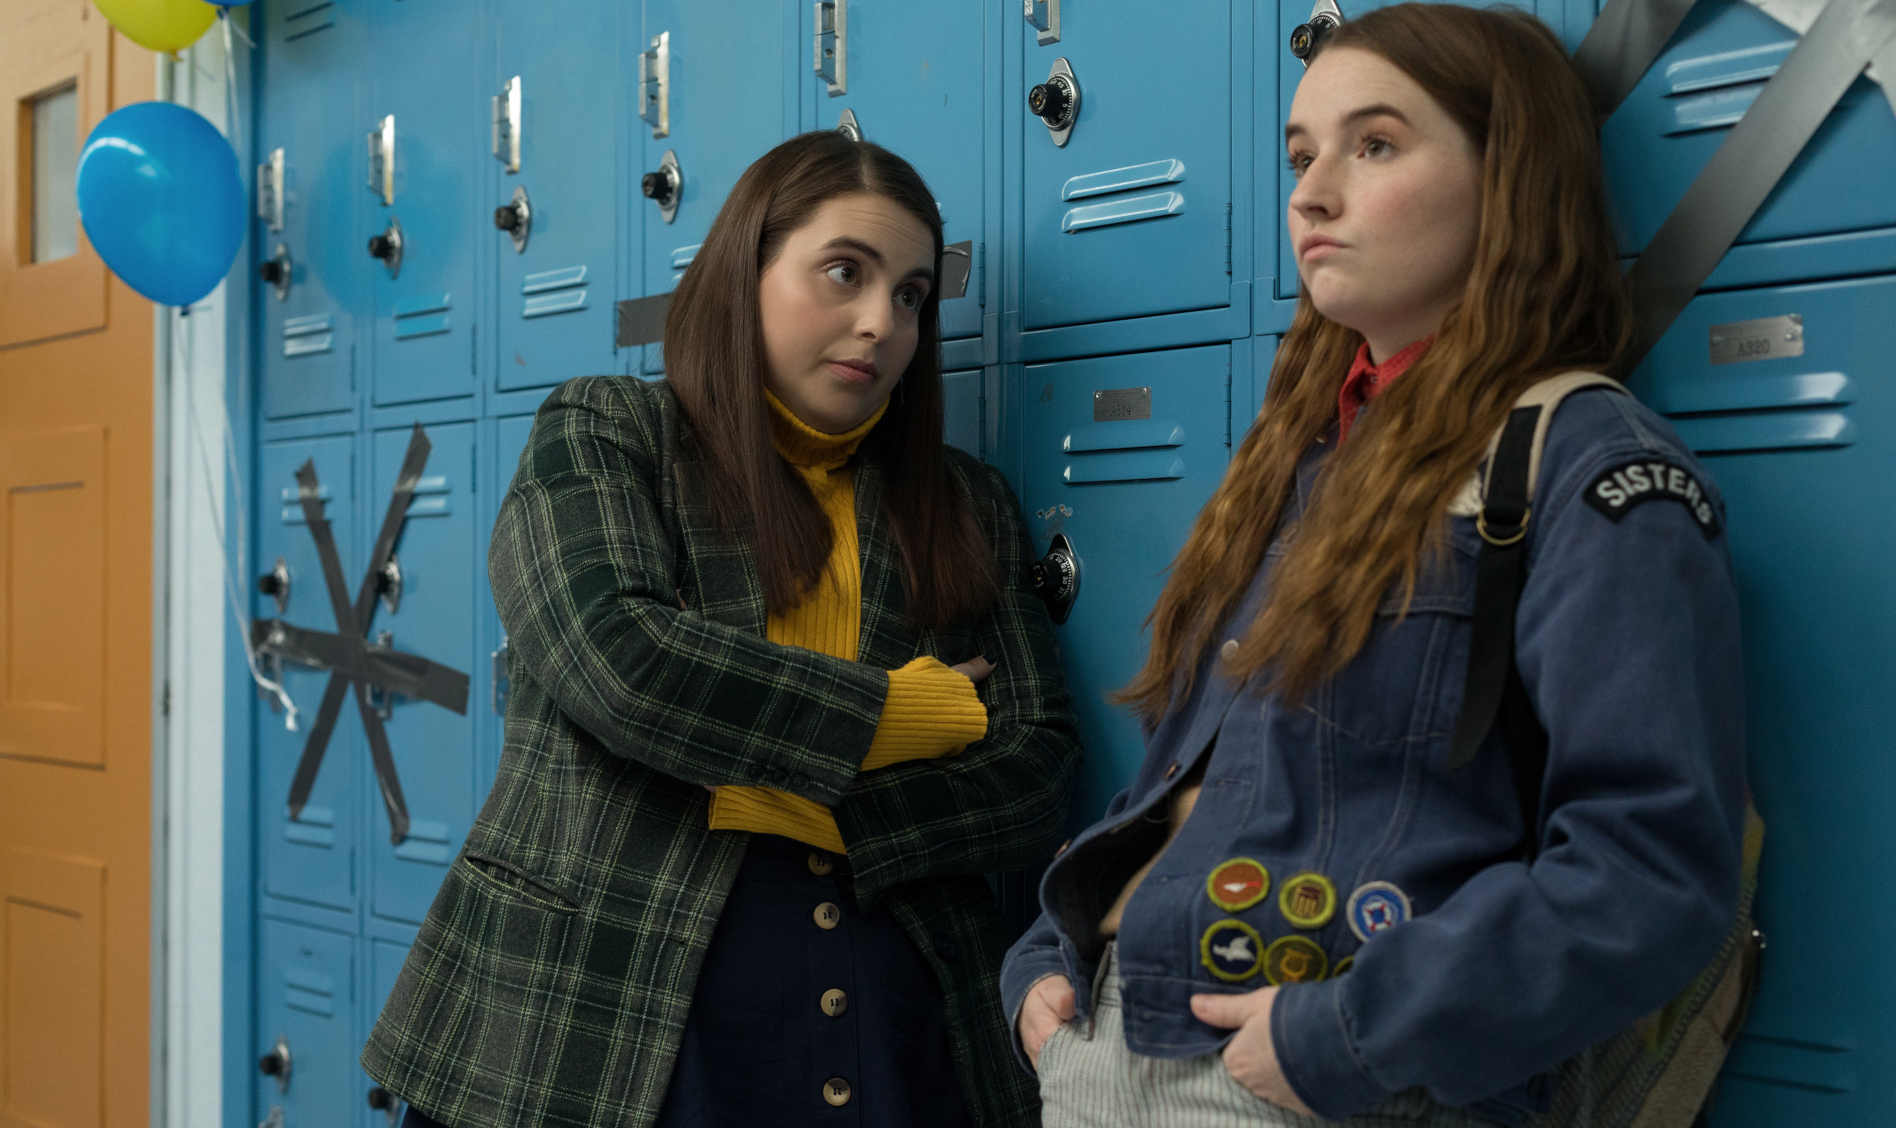 Booksmart: Smart, fun teen comedy rejects stereotypes and embraces representation